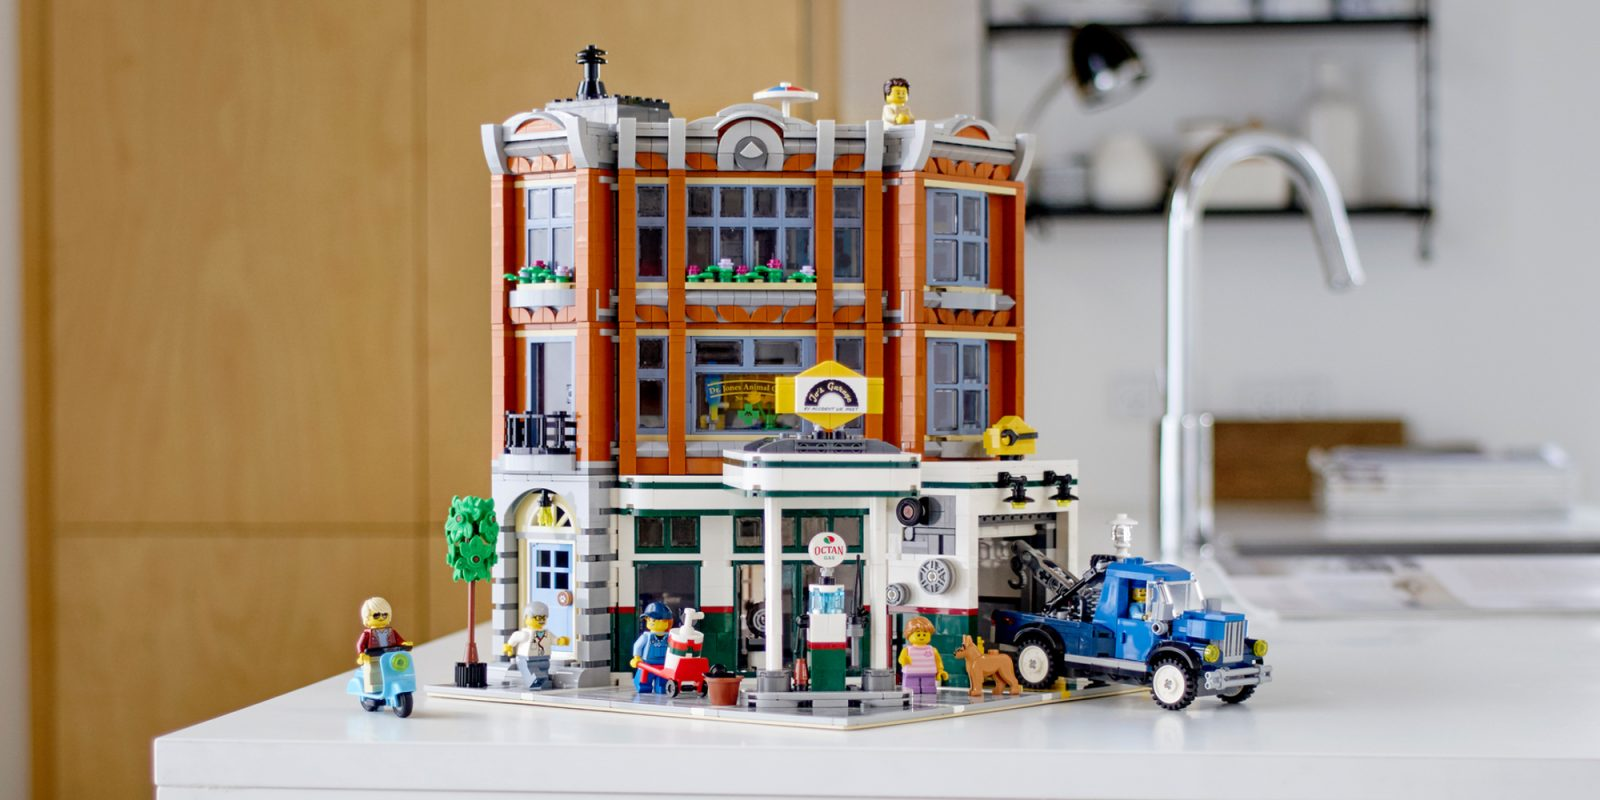 LEGO expands its brick-built City lineup with new 2,500